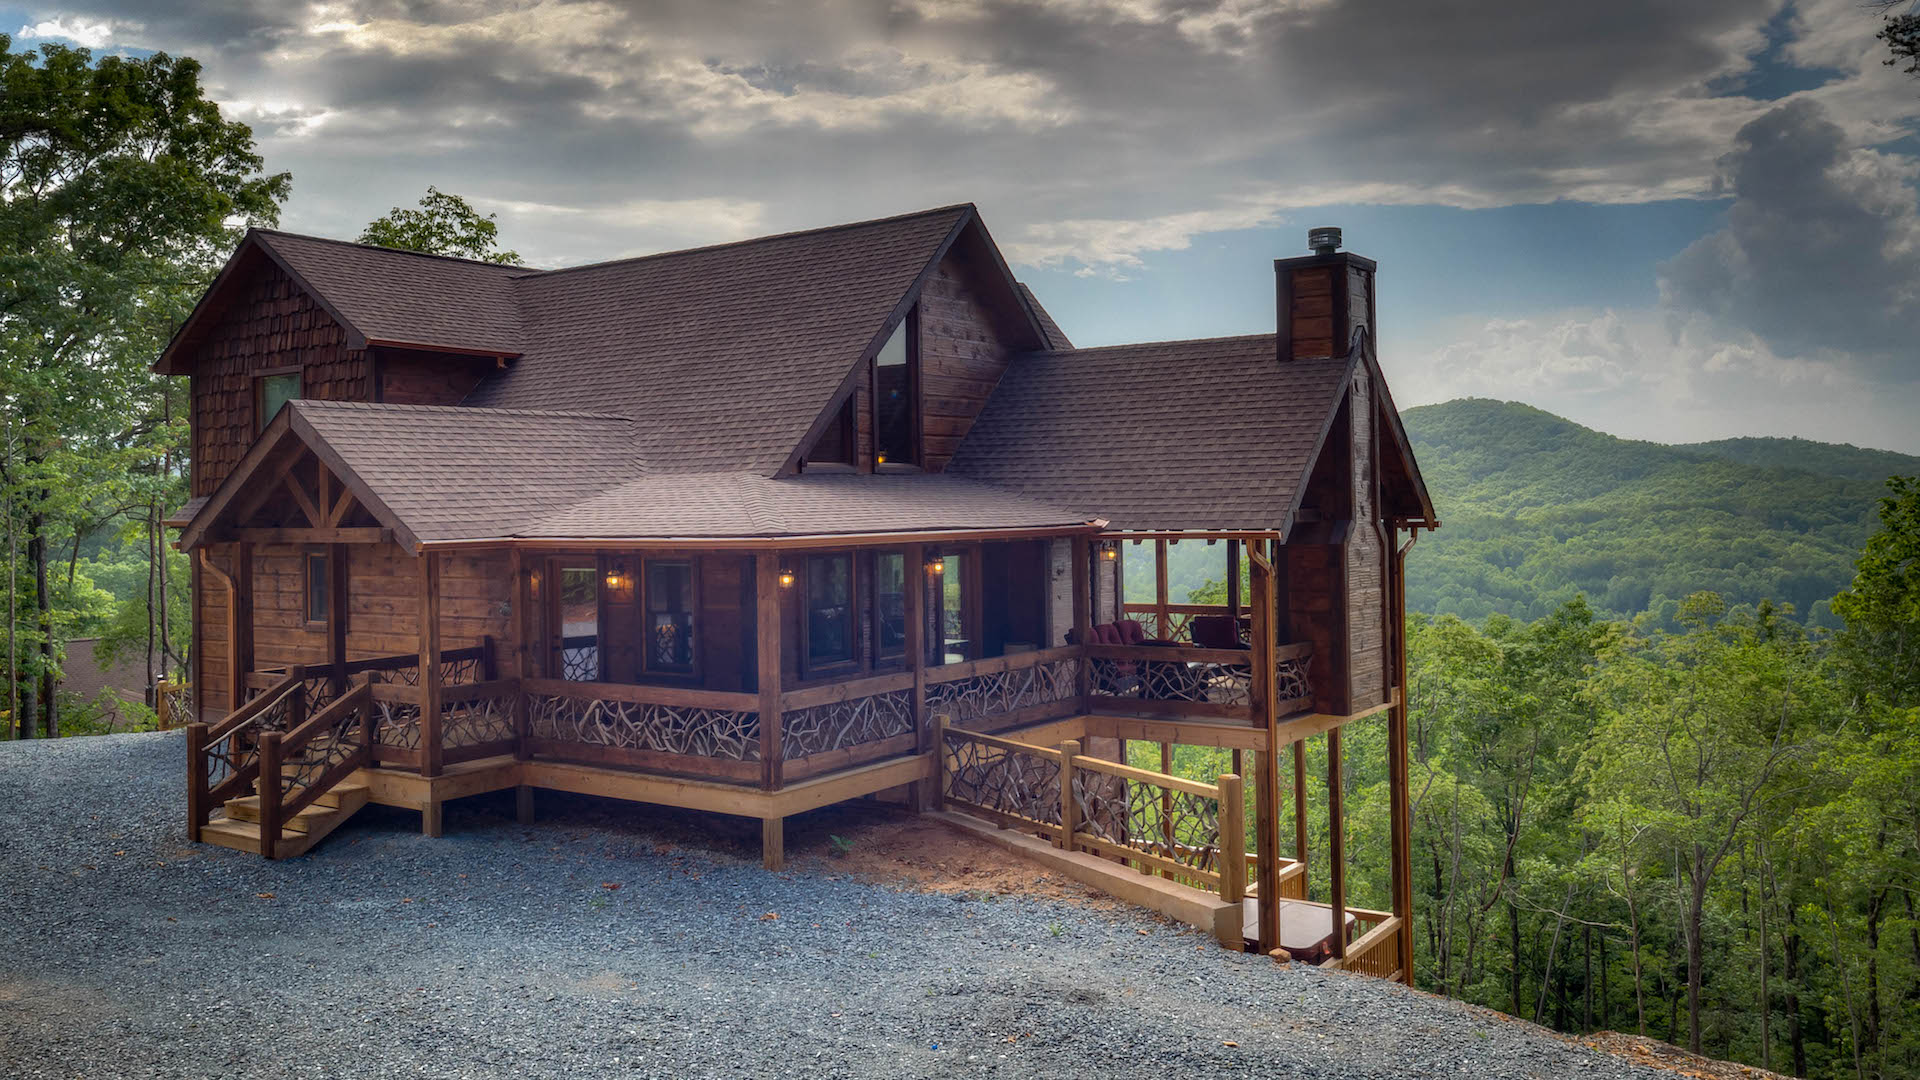 com vacation in usa ridge mountains cabins from pin travel vrbo rental rentals cabin ga blue